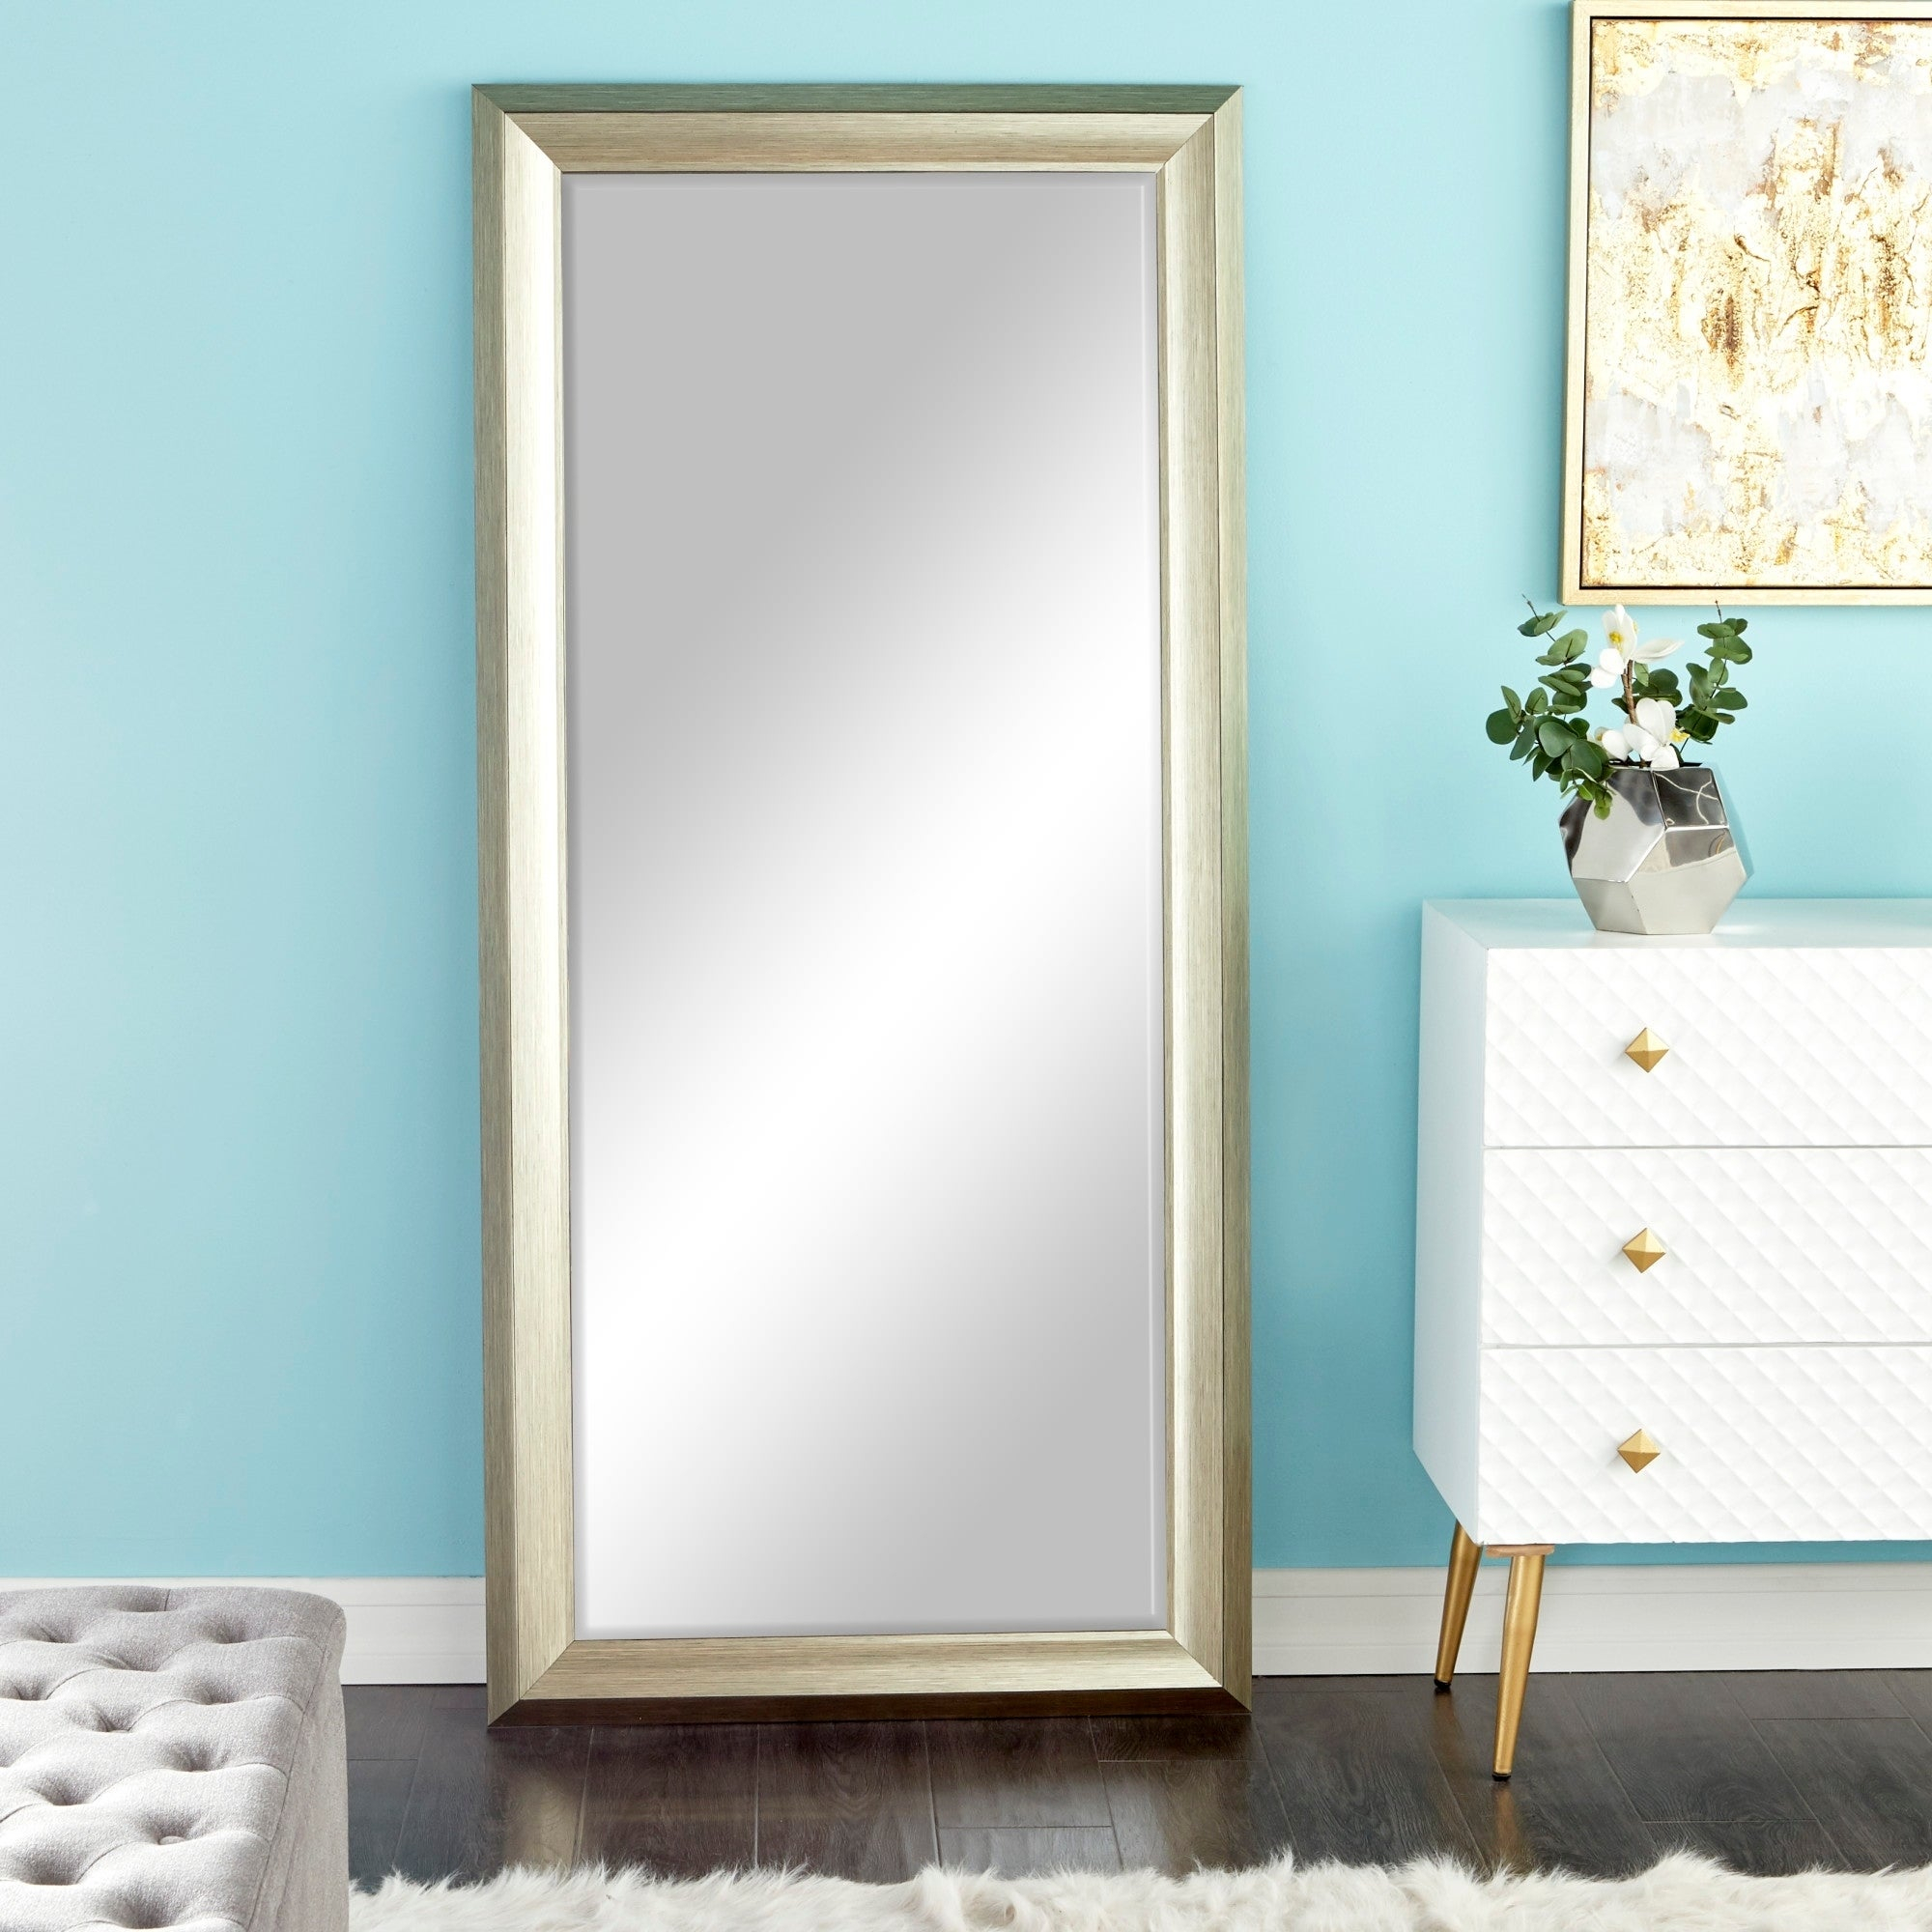 "Traditional Style Rectangular Beveled Wall Mirror 30"" X 65"" – White Inside Traditional Beveled Wall Mirrors (View 20 of 20)"